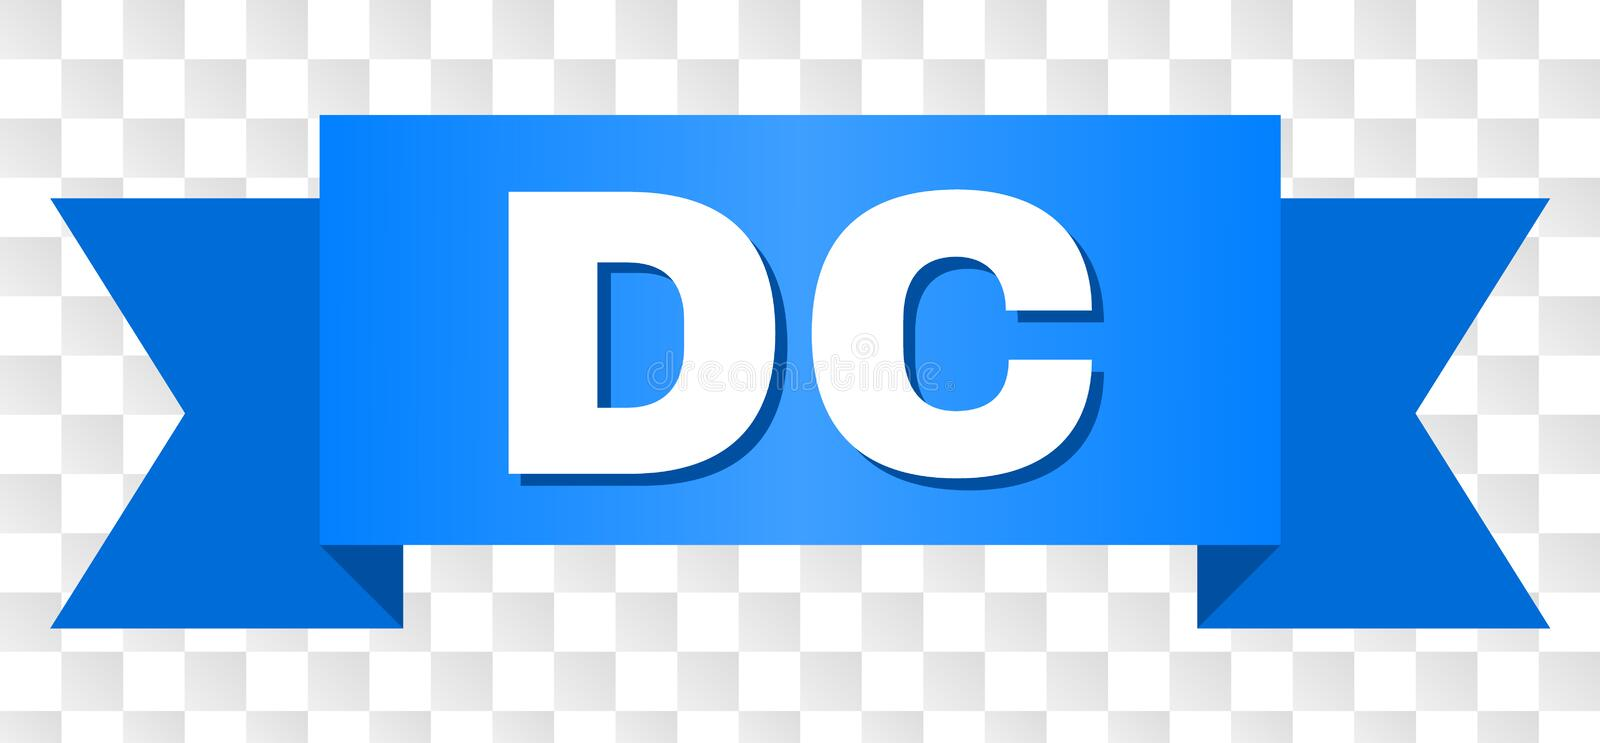 Blue Tape with DC Text. DC text on a ribbon. Designed with white caption and blue tape. Vector banner with DC tag on a transparent background vector illustration